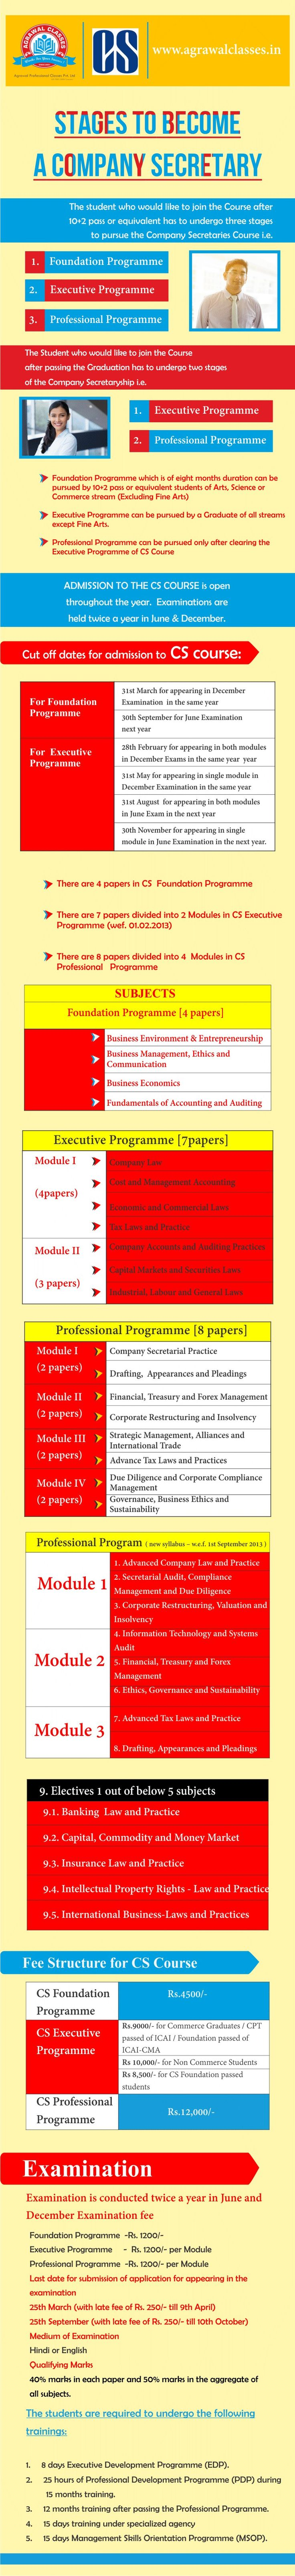 Stages to become a Company Secretary.